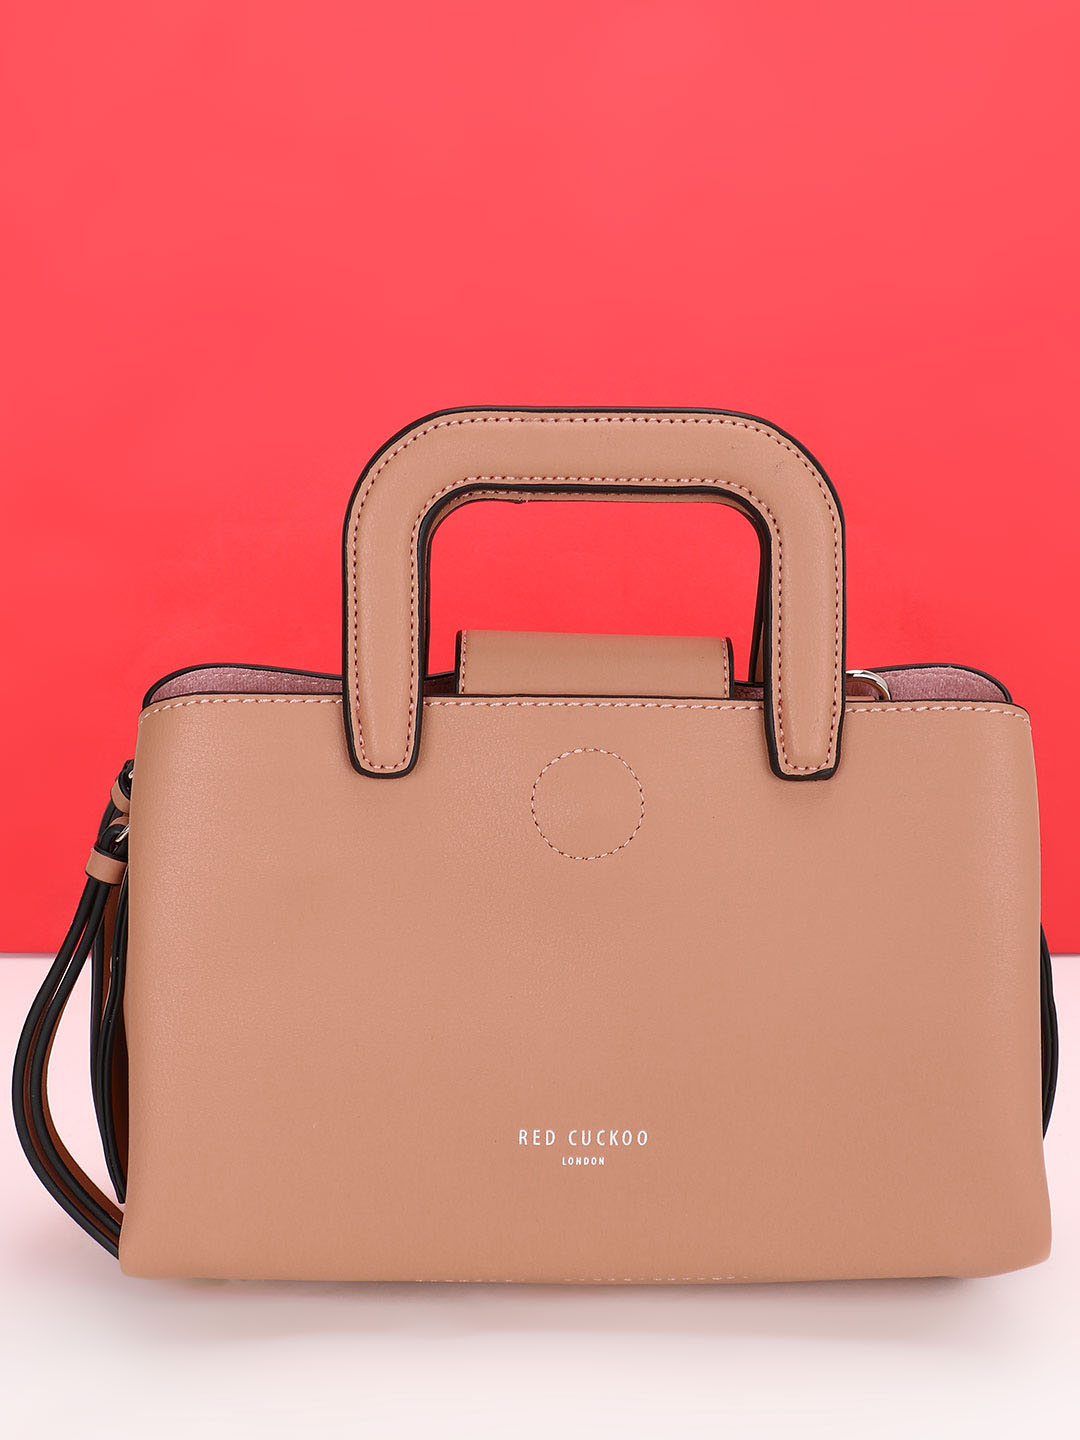 Red Cuckoo Beige Structured Tote Bag 1